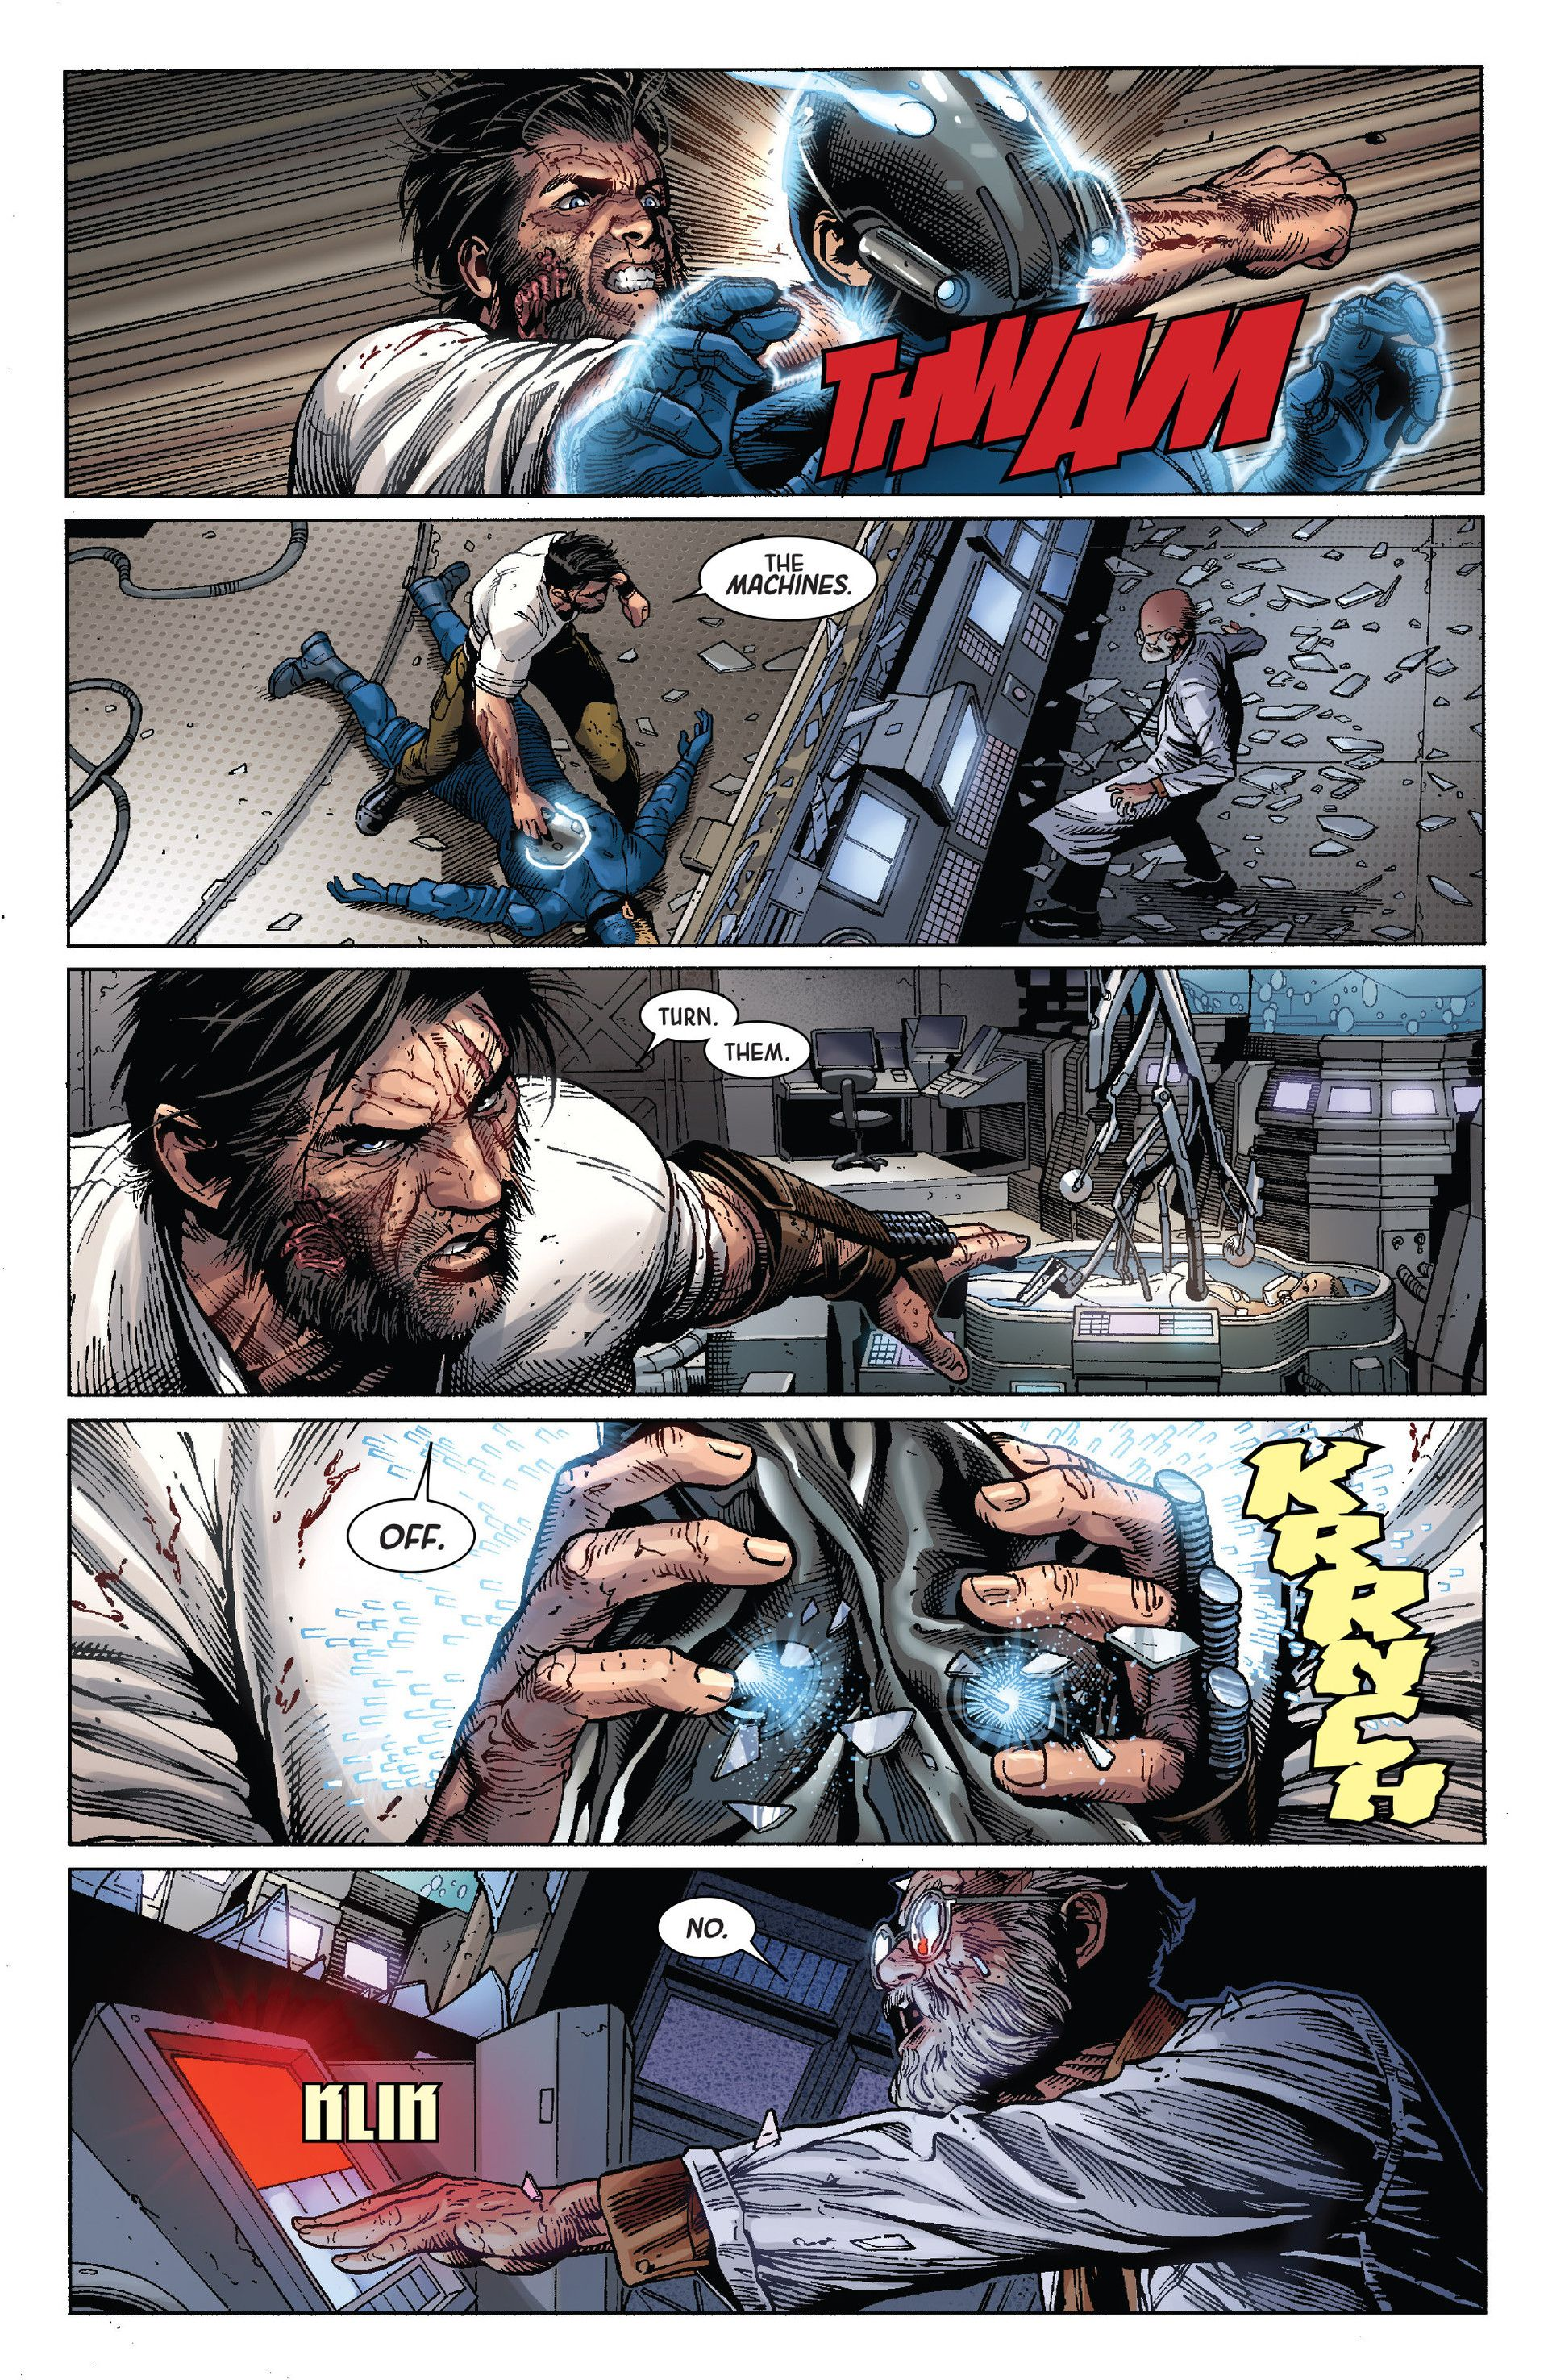 Death of Wolverine Issue #4 - Read Death of Wolverine Issue #4 comic online in high quality